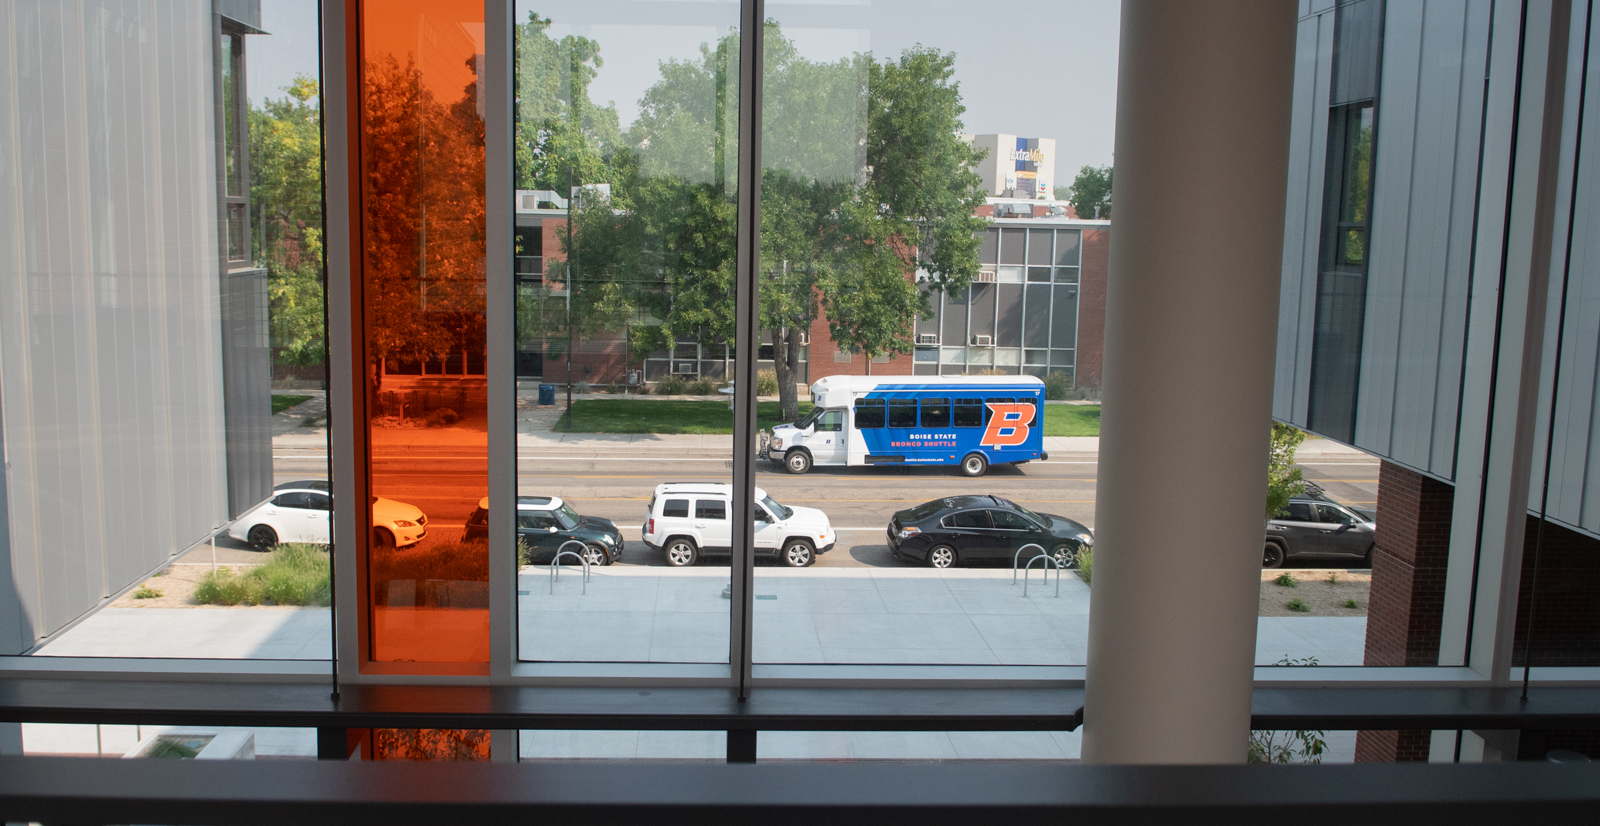 View of cars and shuttle bus on the street from inside the Materials Research building